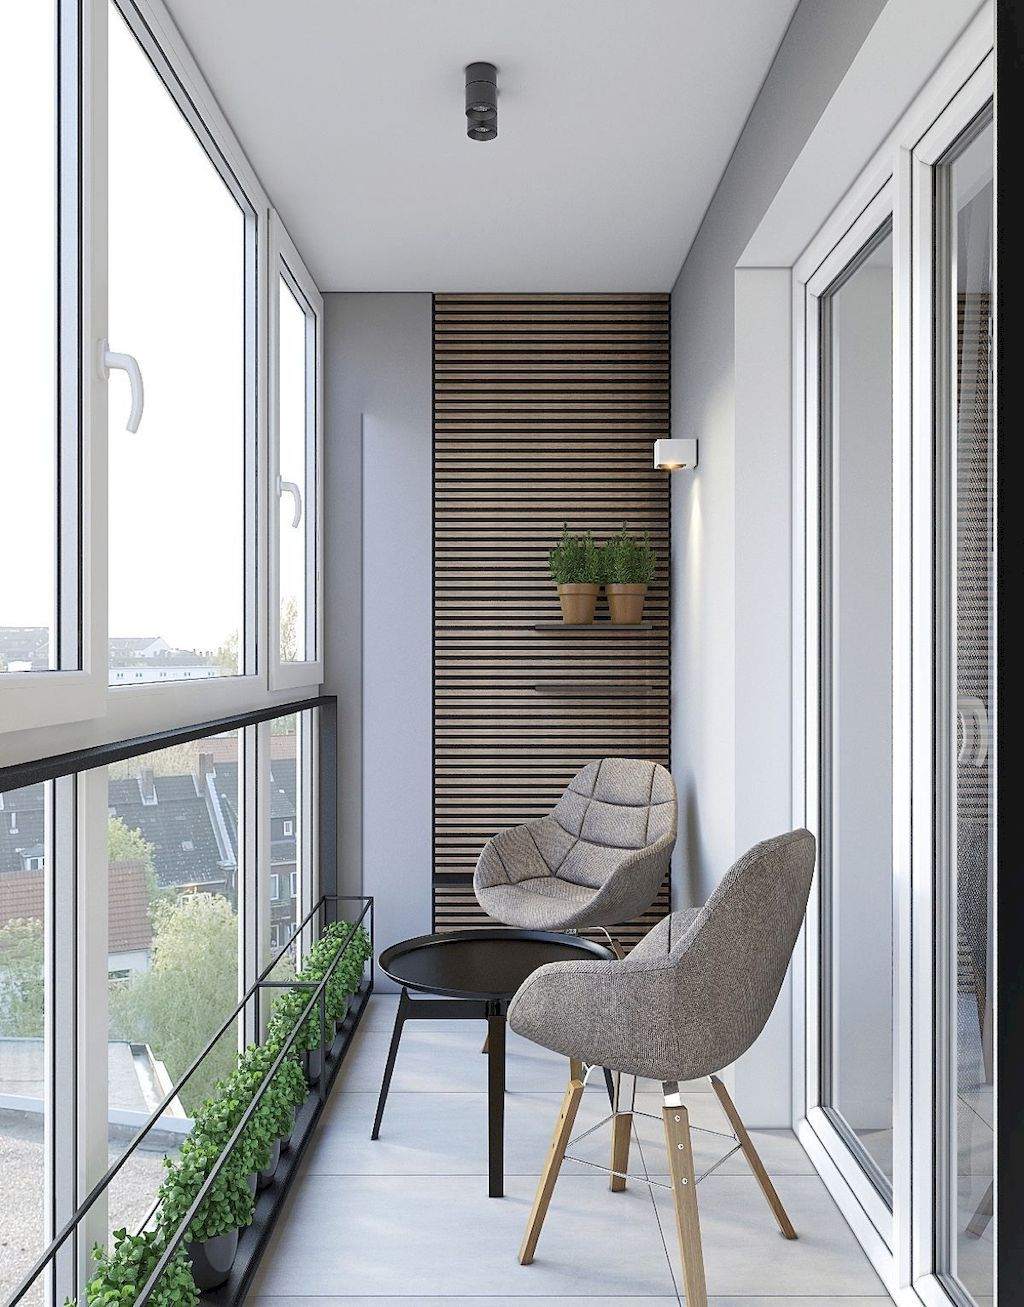 Balcon Design Apartment Design Ideas To Your Space For A More Dynamic Room